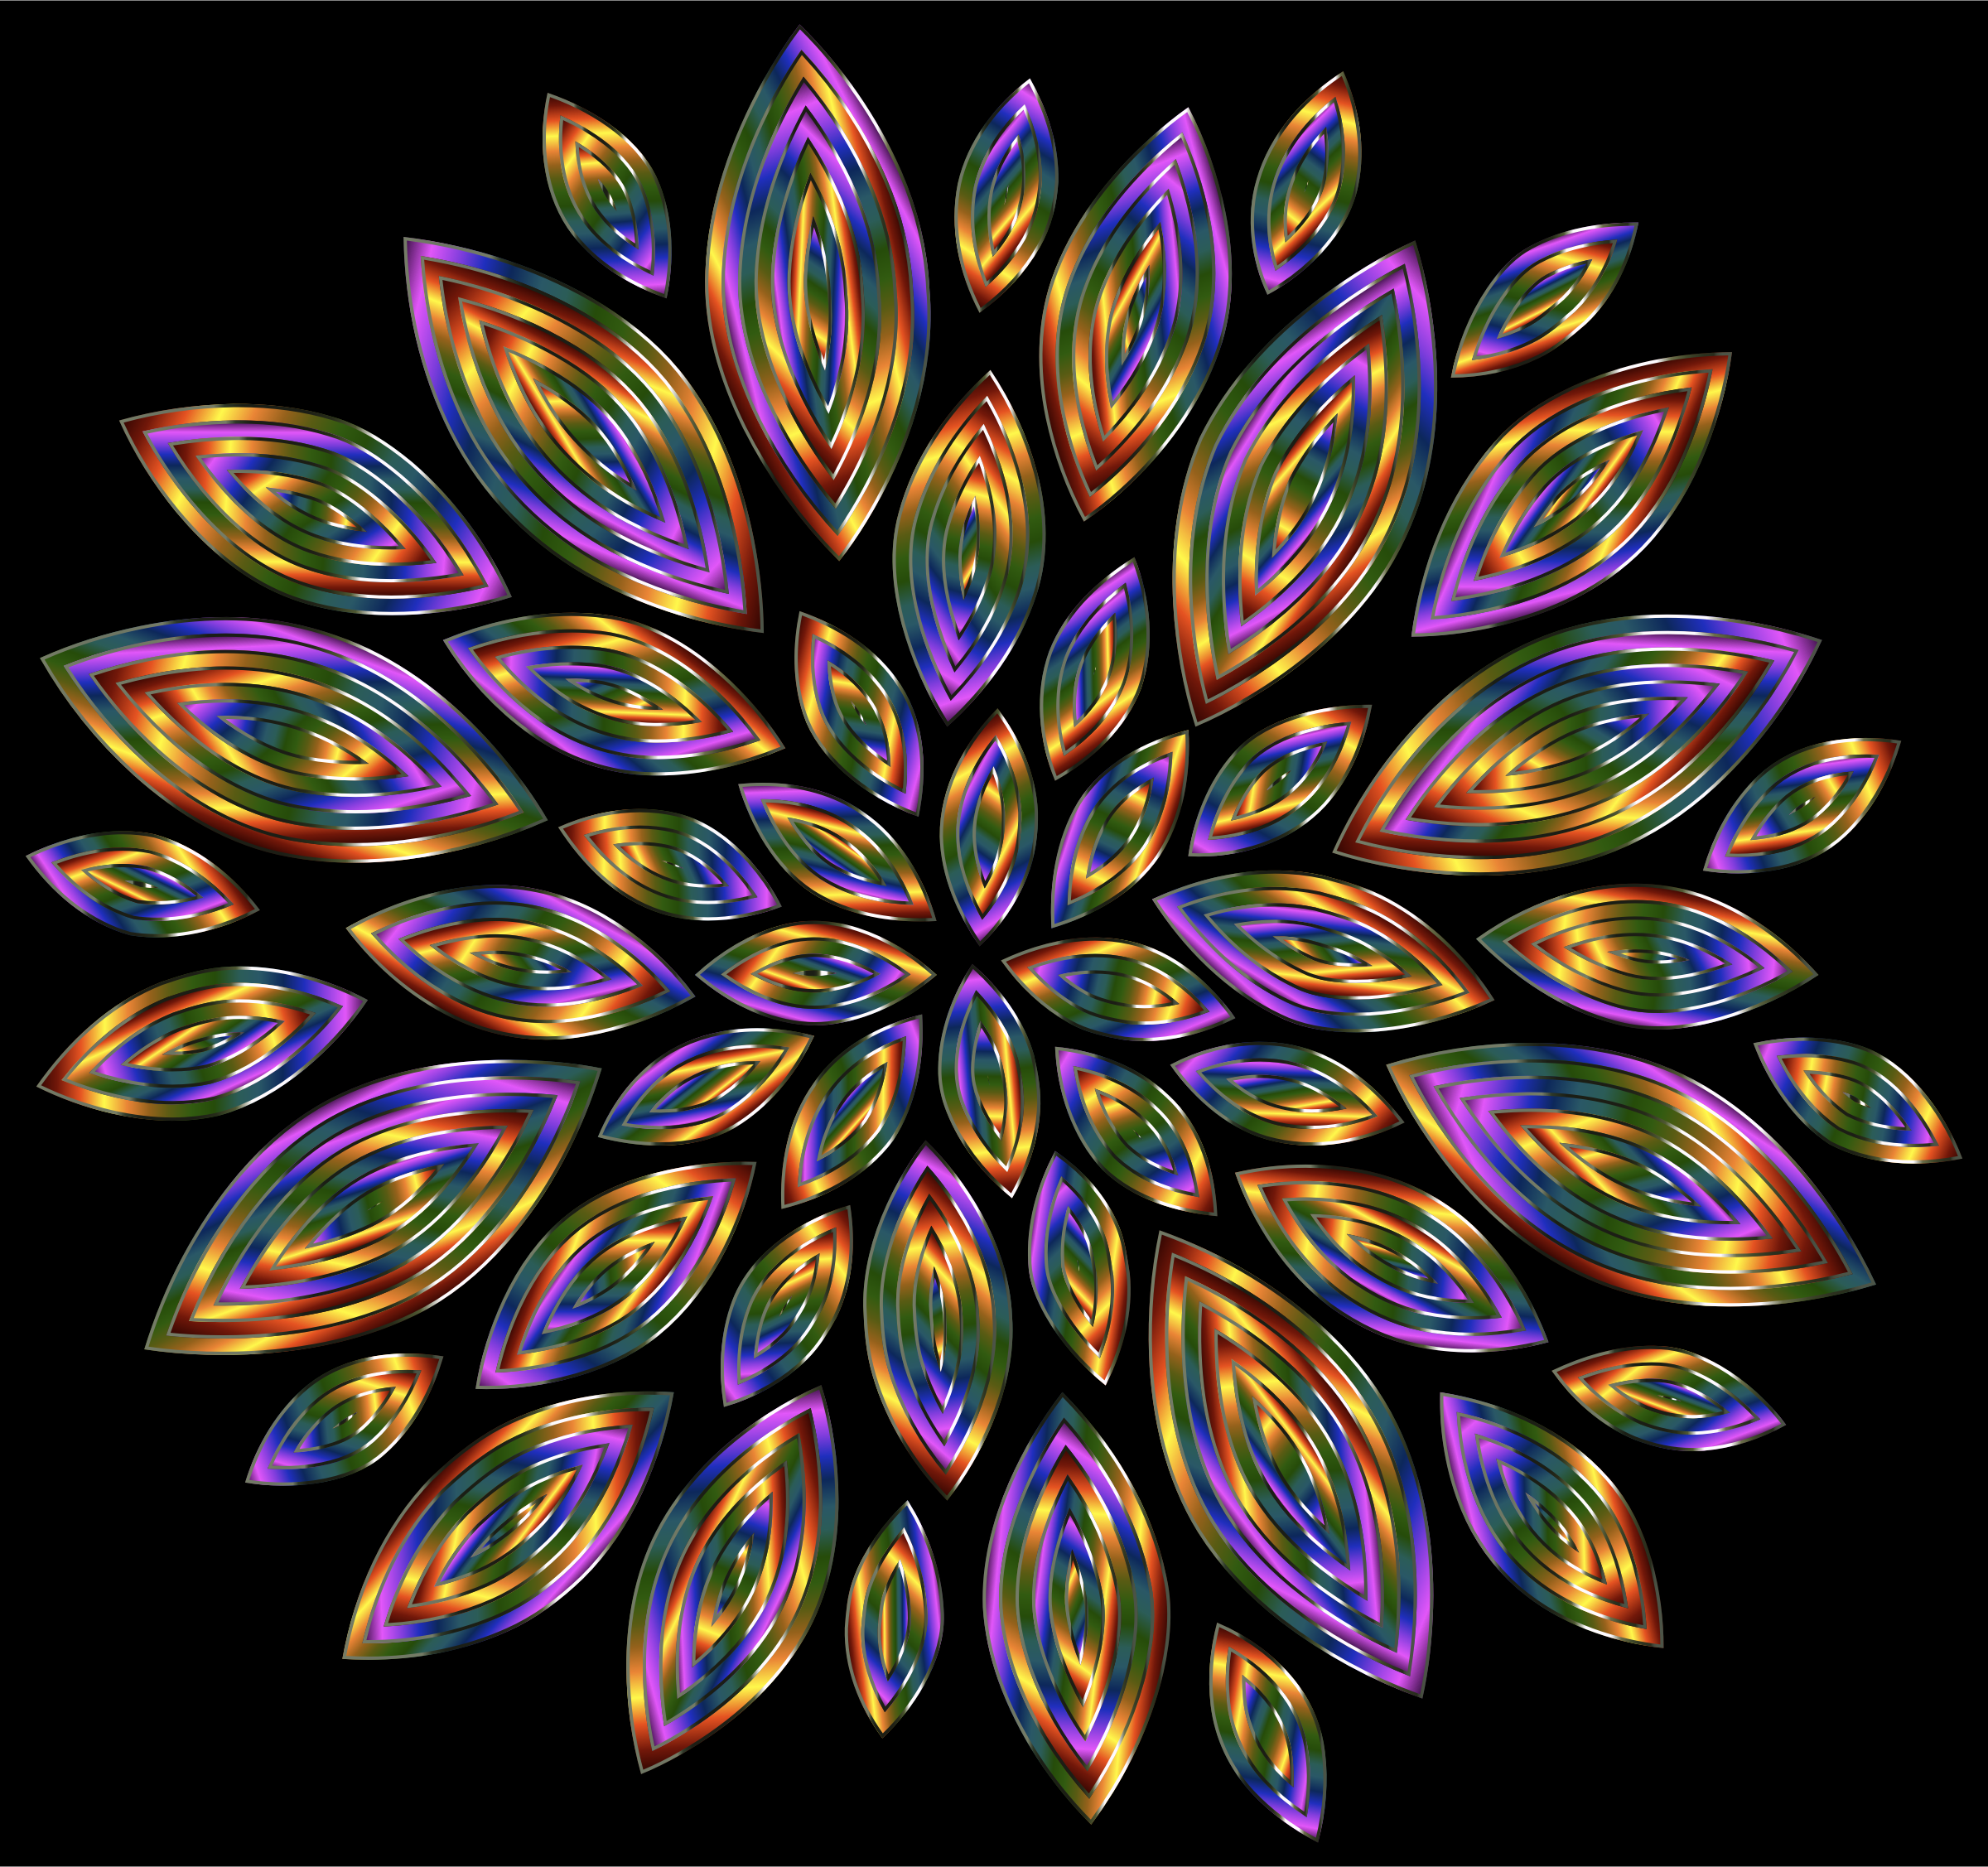 Chromatic Flower Petals 12 With Background by GDJ